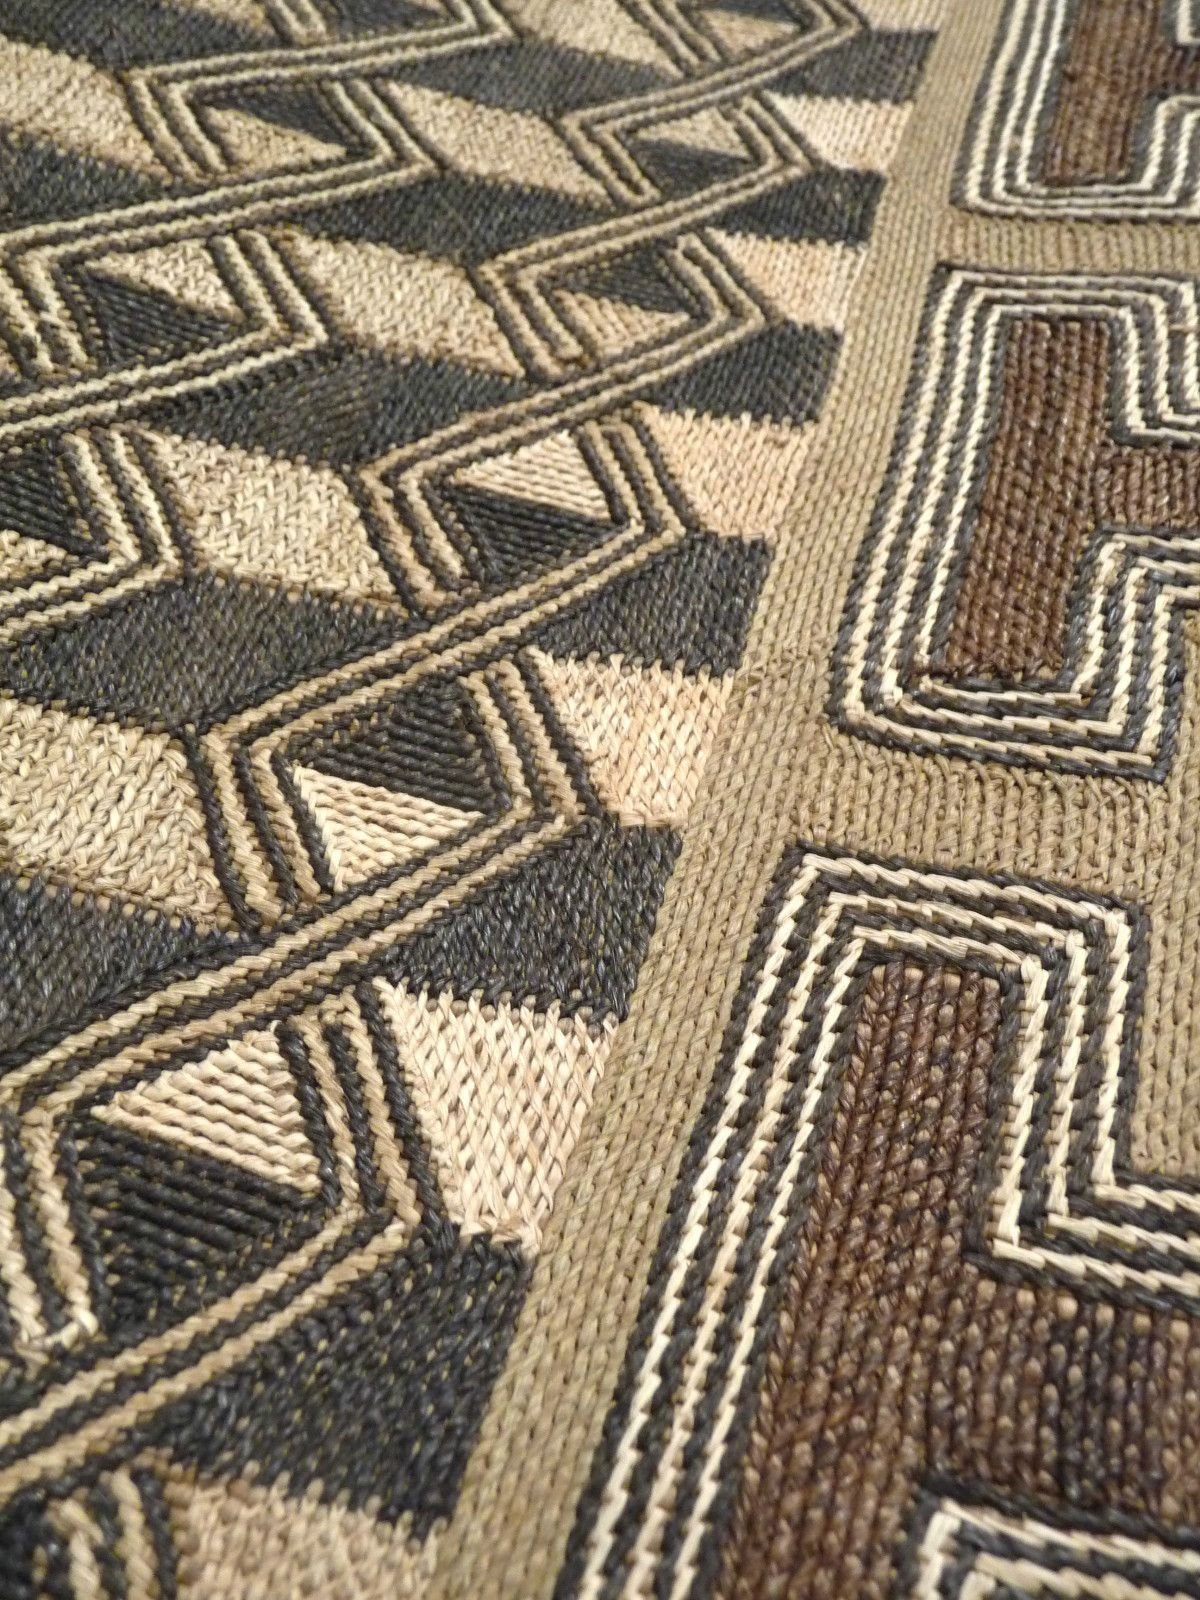 Africa | Kuba Raffia Cloth Detail - Bushoong - Mid 20th century – DR Congo